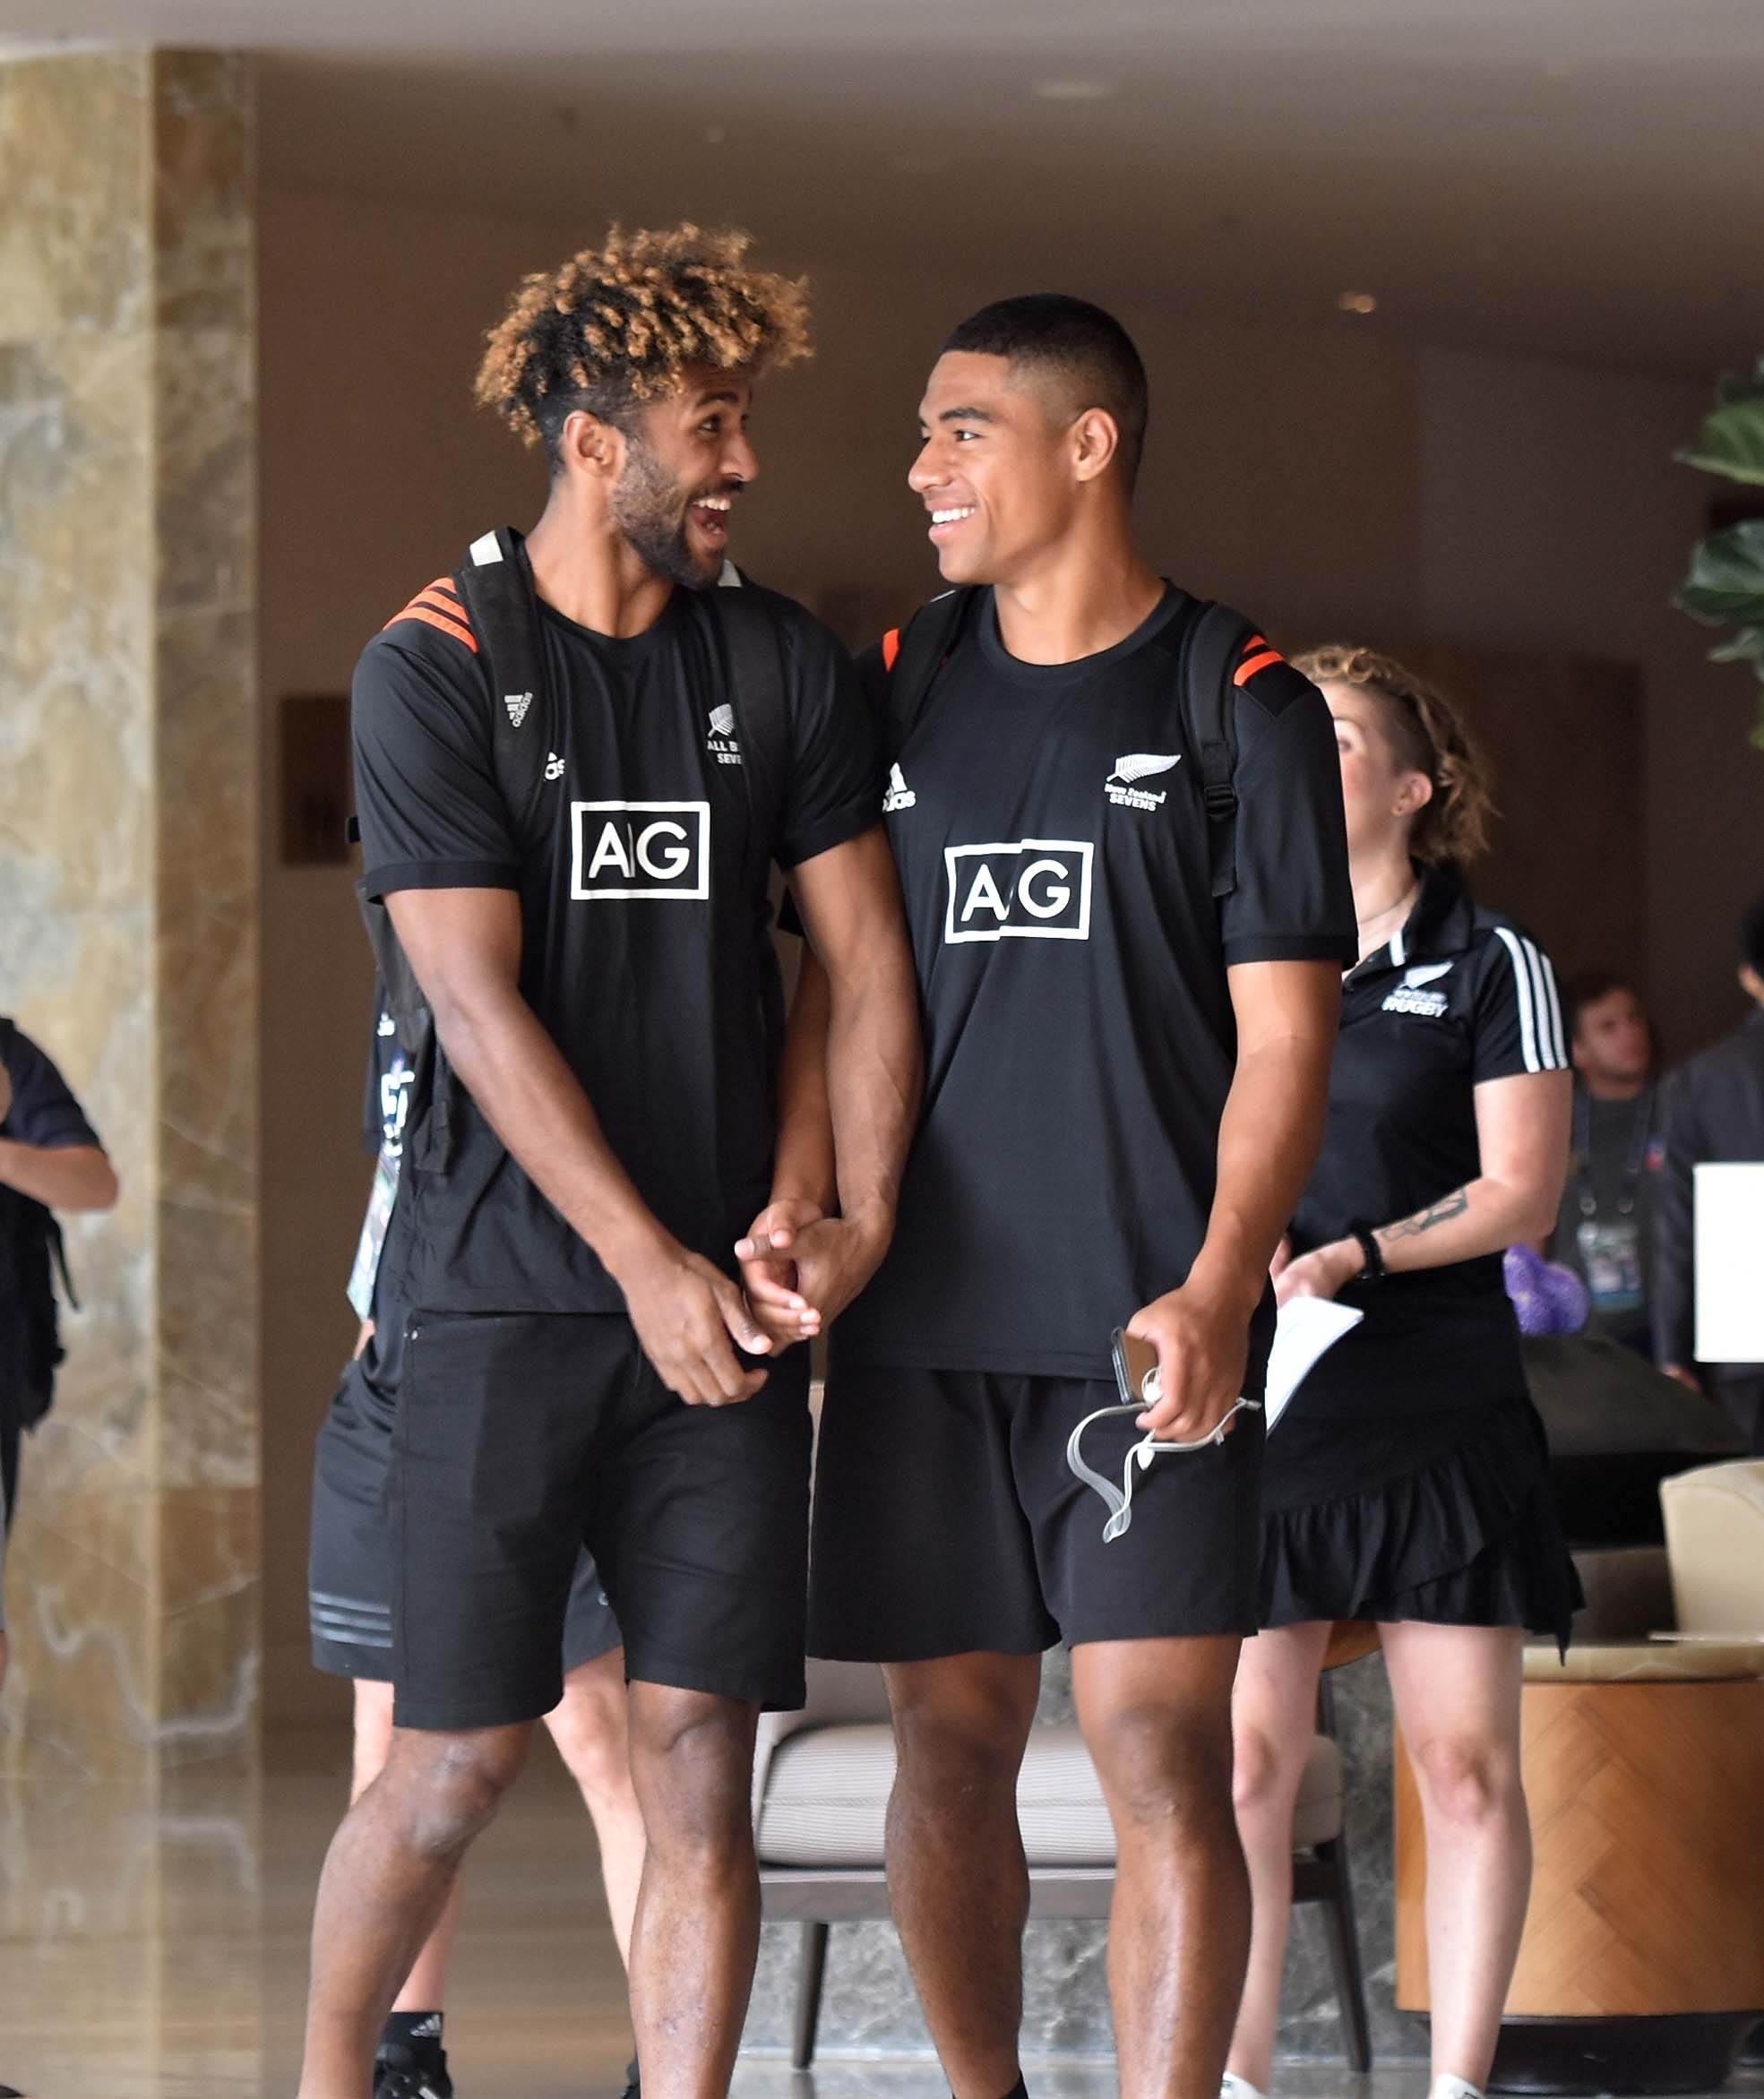 Joe Ravouvou of New Zealand 7's team having a light moment with a team member at the hotel in Hong Kong yesterday. New Zealand team is pooled together with Fiji,Russia and Samoa.Picture: RAMA